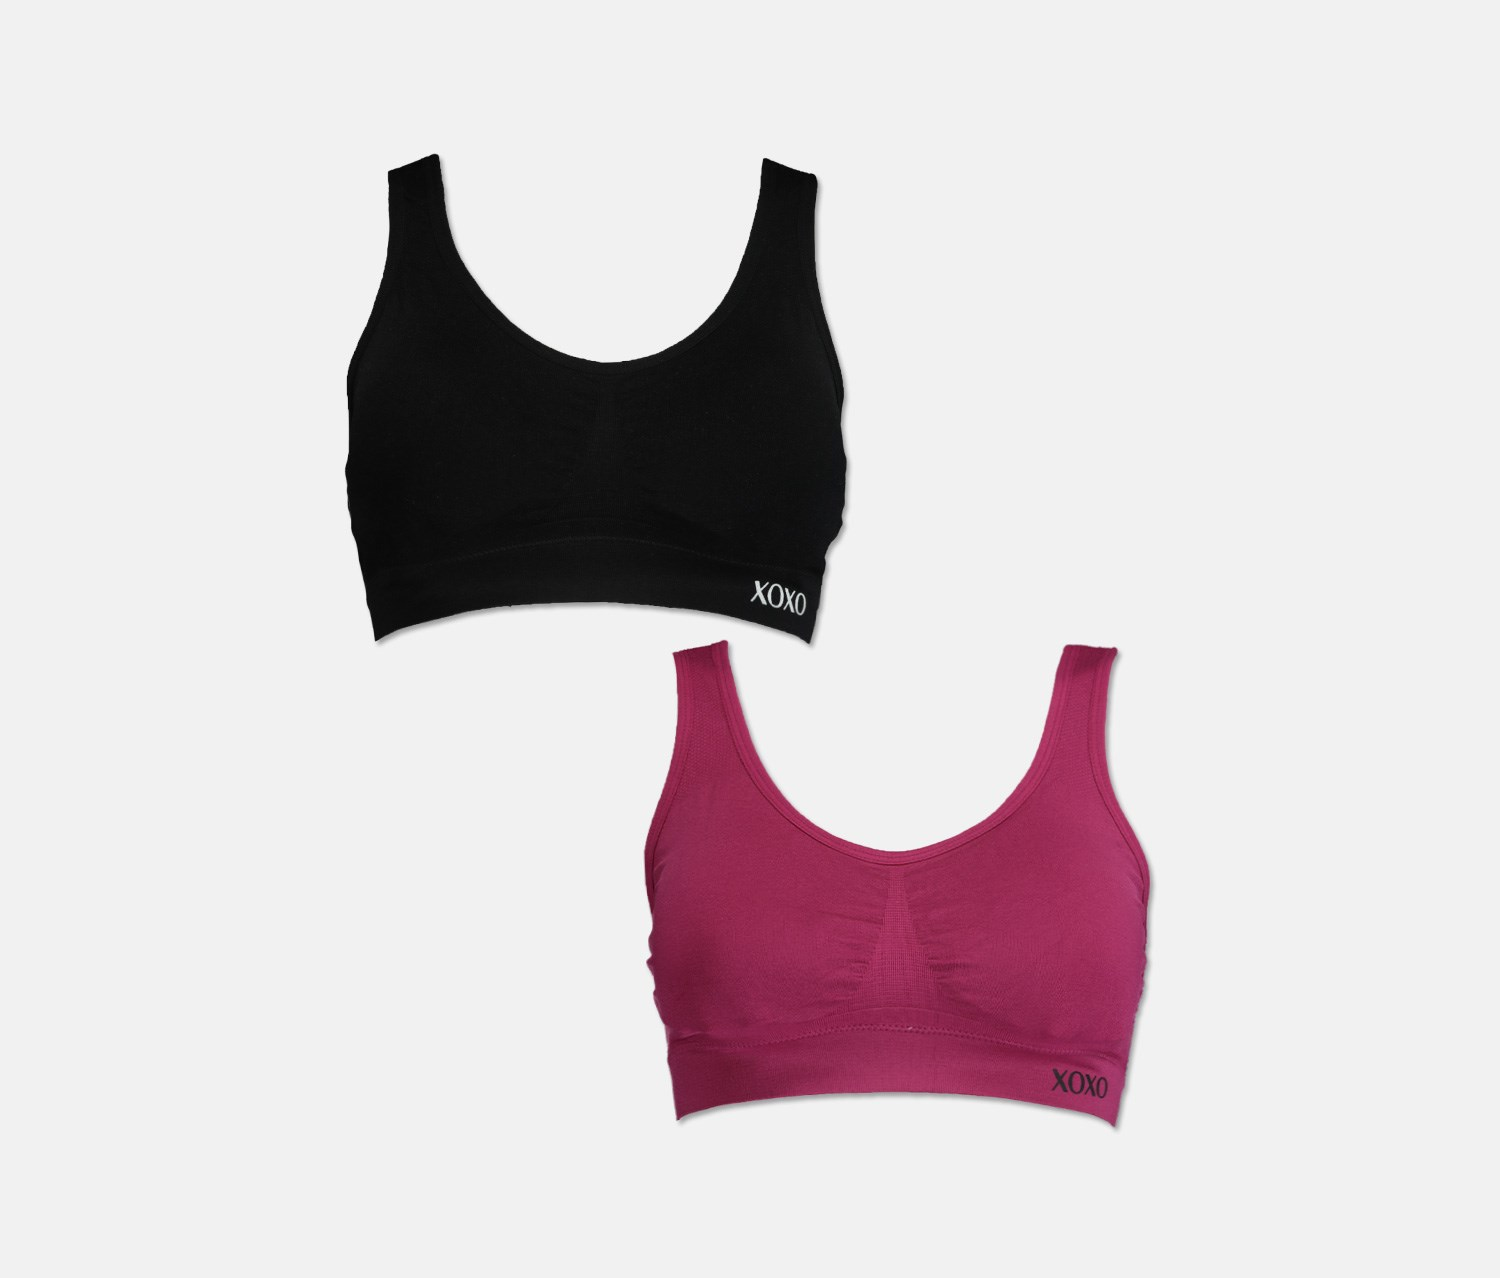 Reebok Girls Nylon//Spandex Seamless Active Sports Bra with Removable Pads 4 Pack